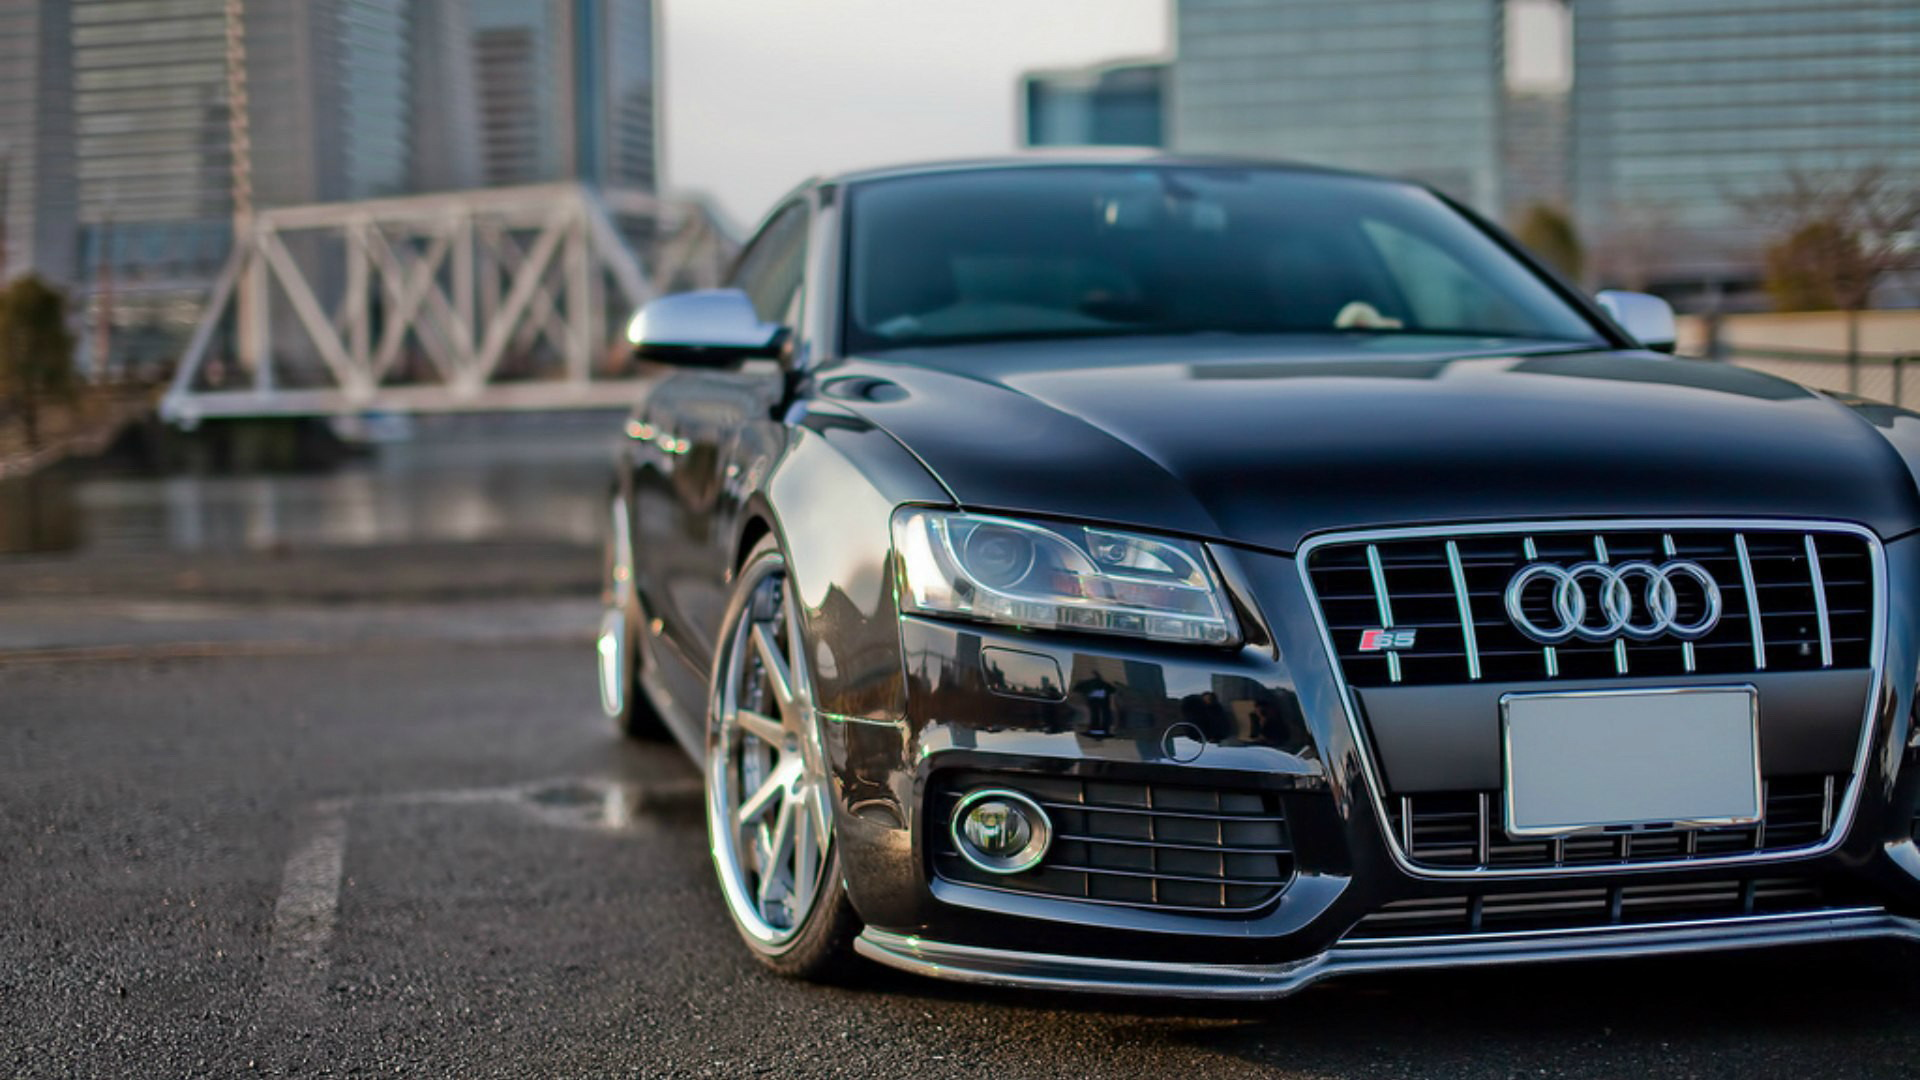 Audi Full HD Wallpaper And Background Image